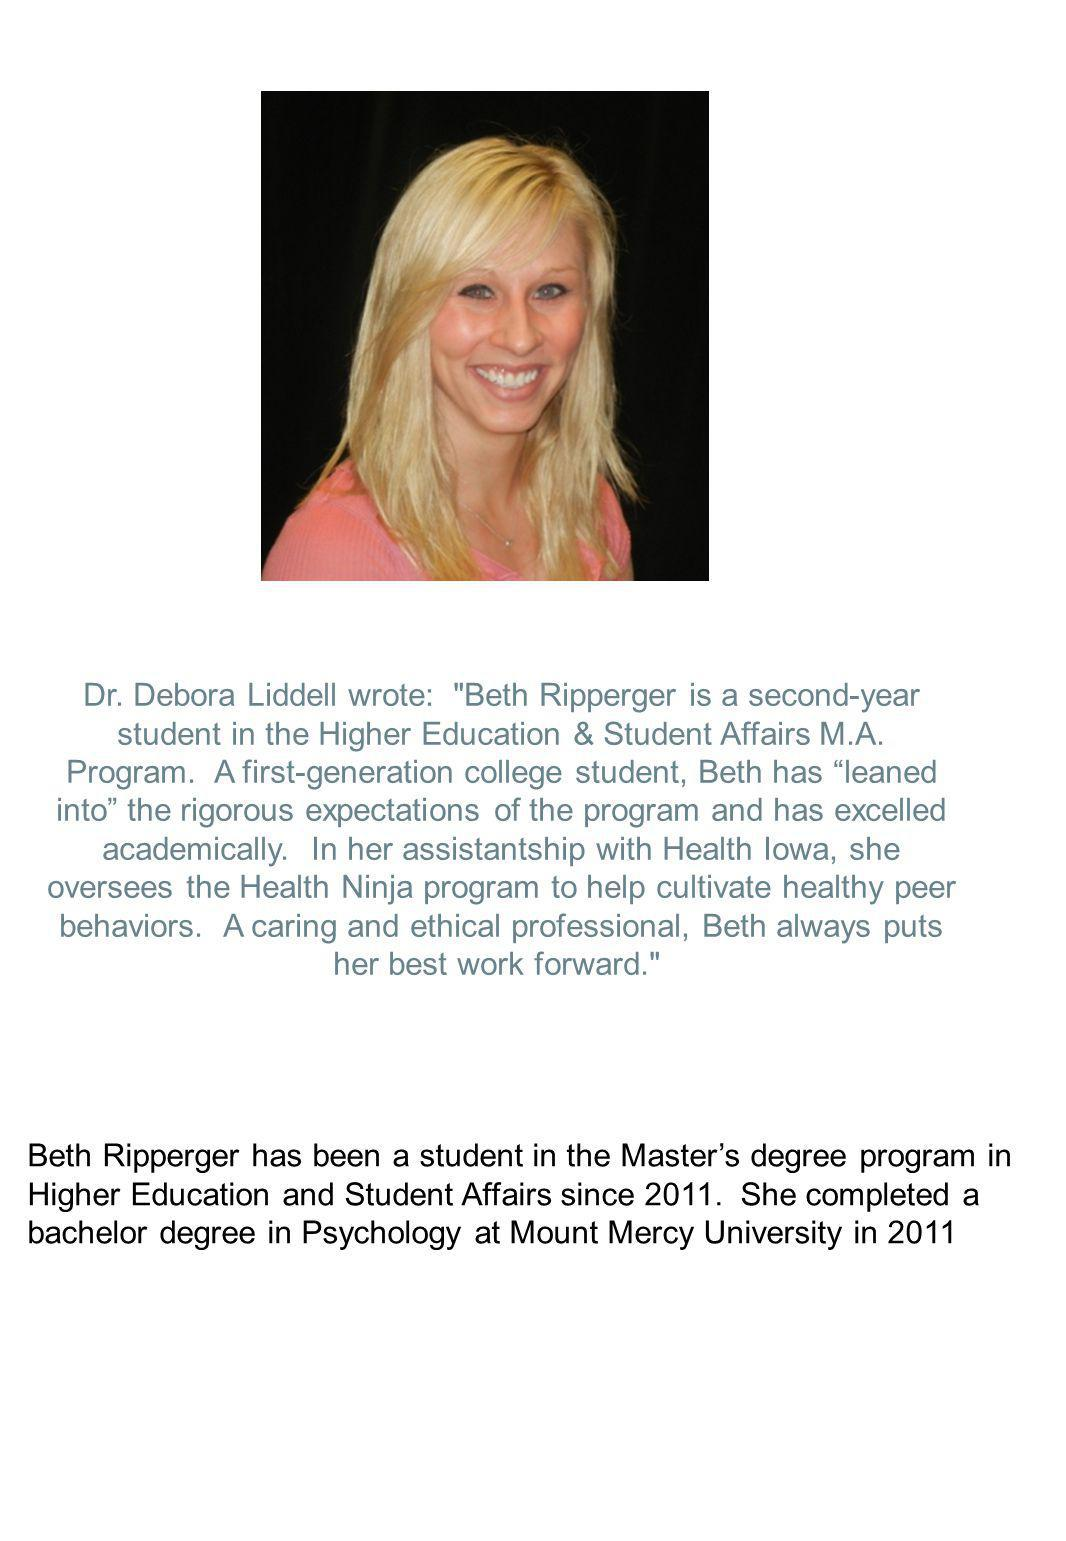 Dr. Debora Liddell wrote: Beth Ripperger is a second-year student in the Higher Education & Student Affairs M.A. Program. A first-generation college student, Beth has leaned into the rigorous expectations of the program and has excelled academically. In her assistantship with Health Iowa, she oversees the Health Ninja program to help cultivate healthy peer behaviors. A caring and ethical professional, Beth always puts her best work forward.